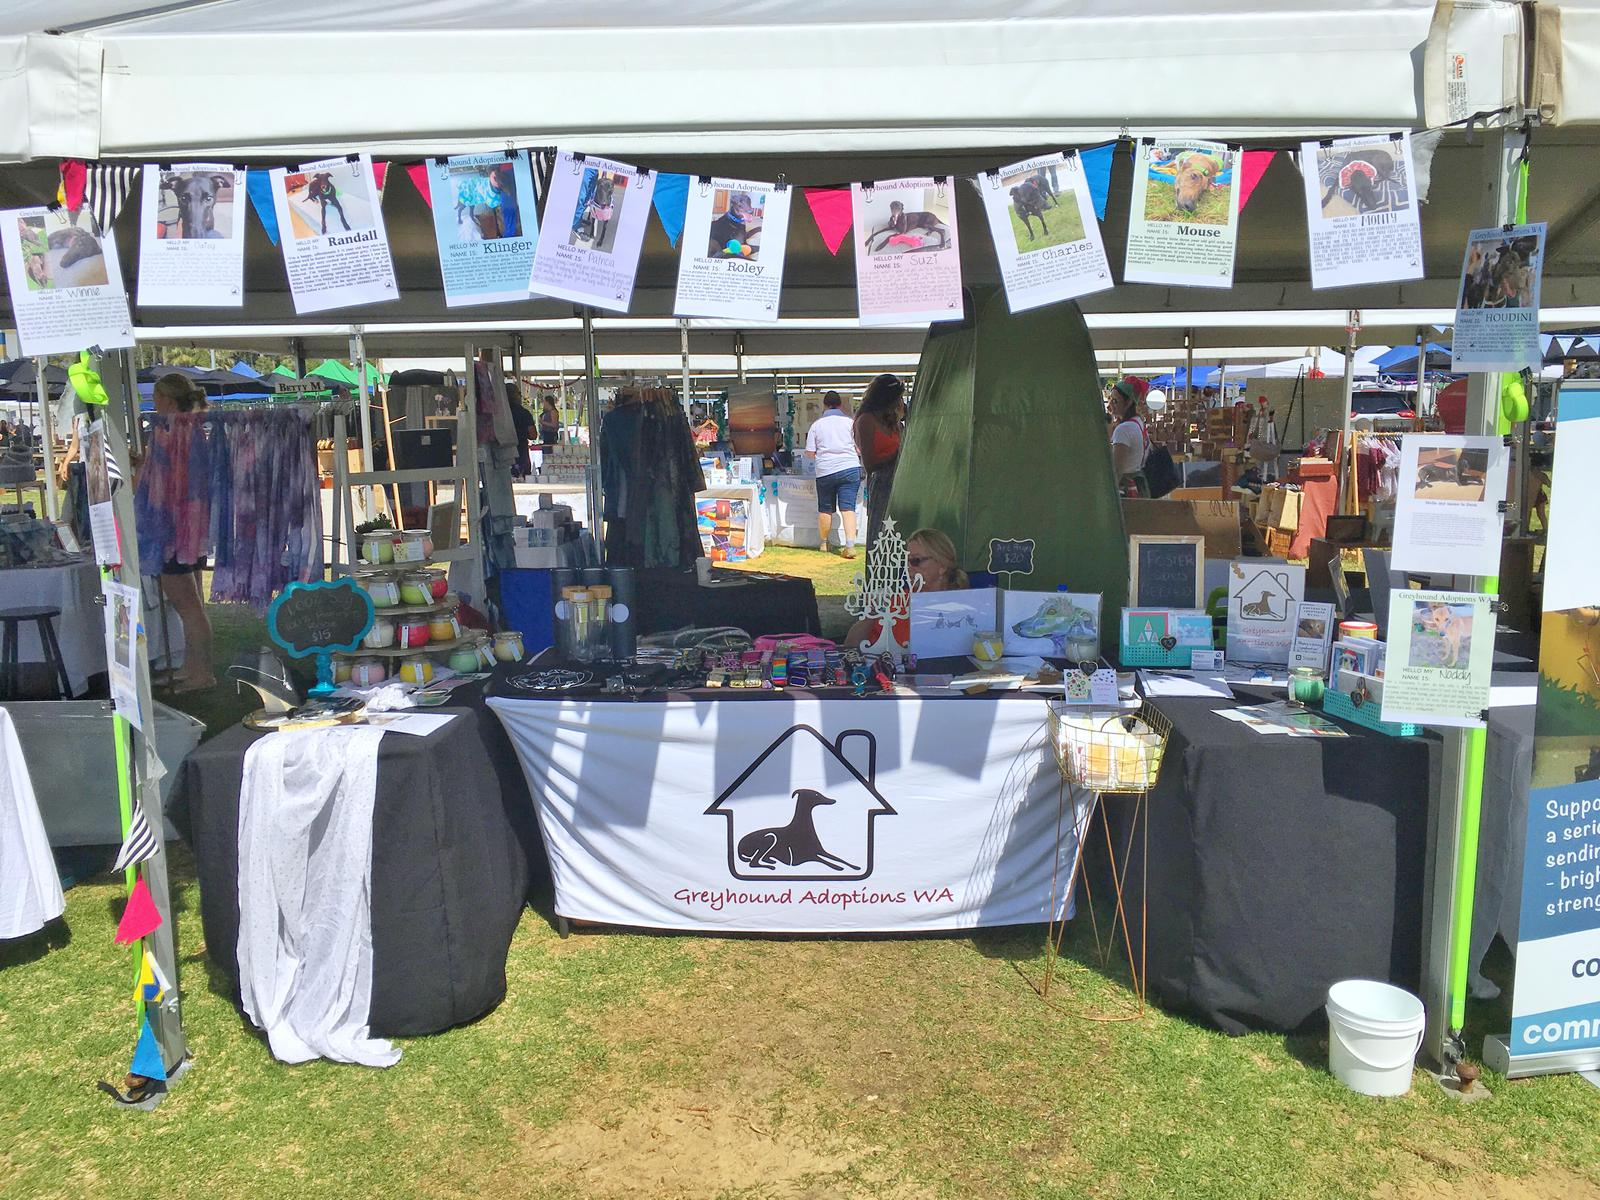 Greyhound Adoptions WA Stall 2